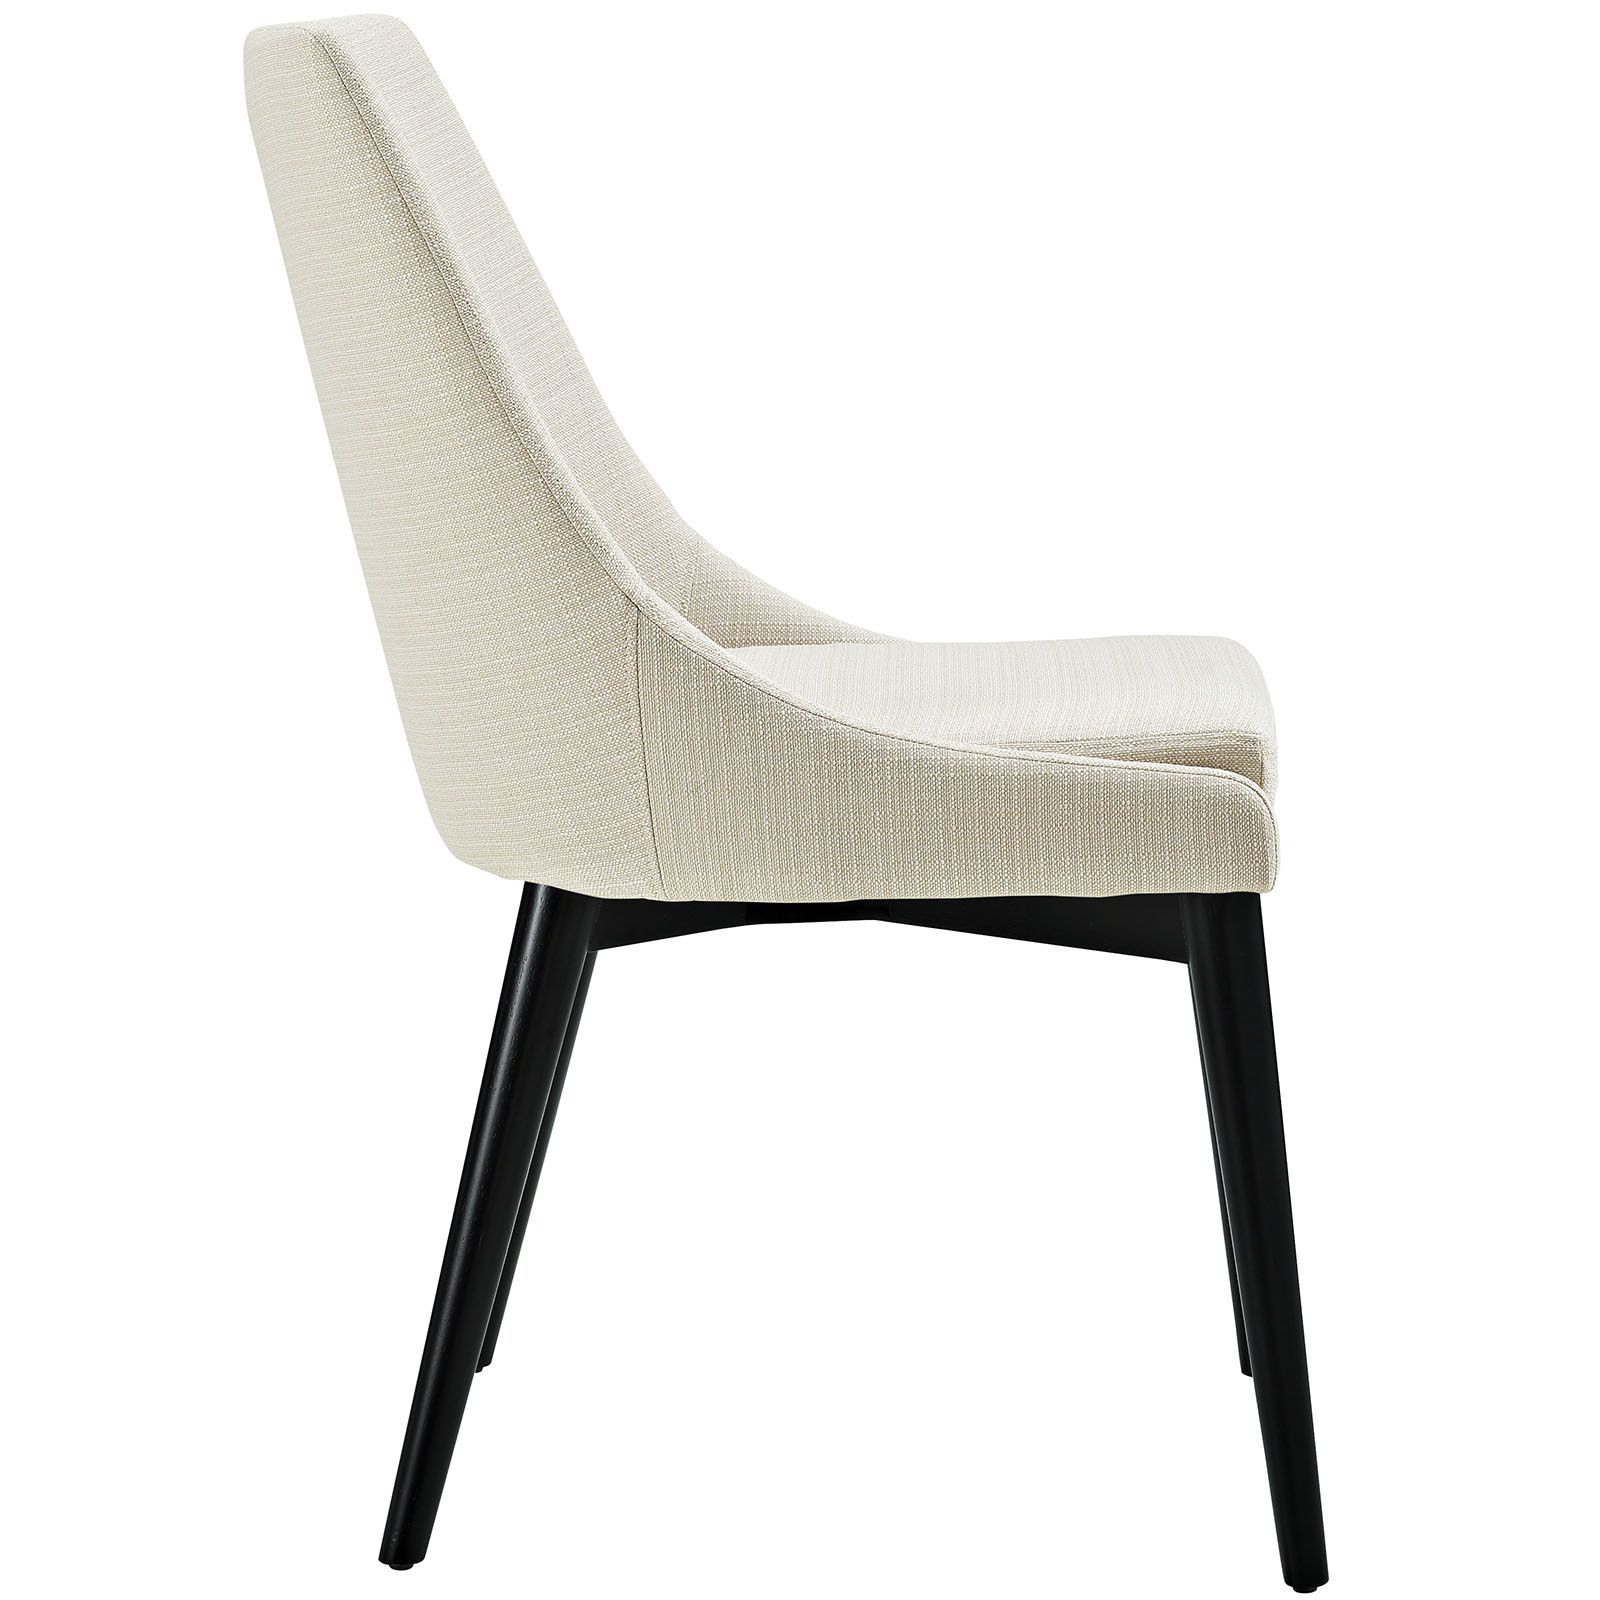 Shop the brand modway fabric dining chairschair designparsons also viscount parsons chair products pinterest chairs and